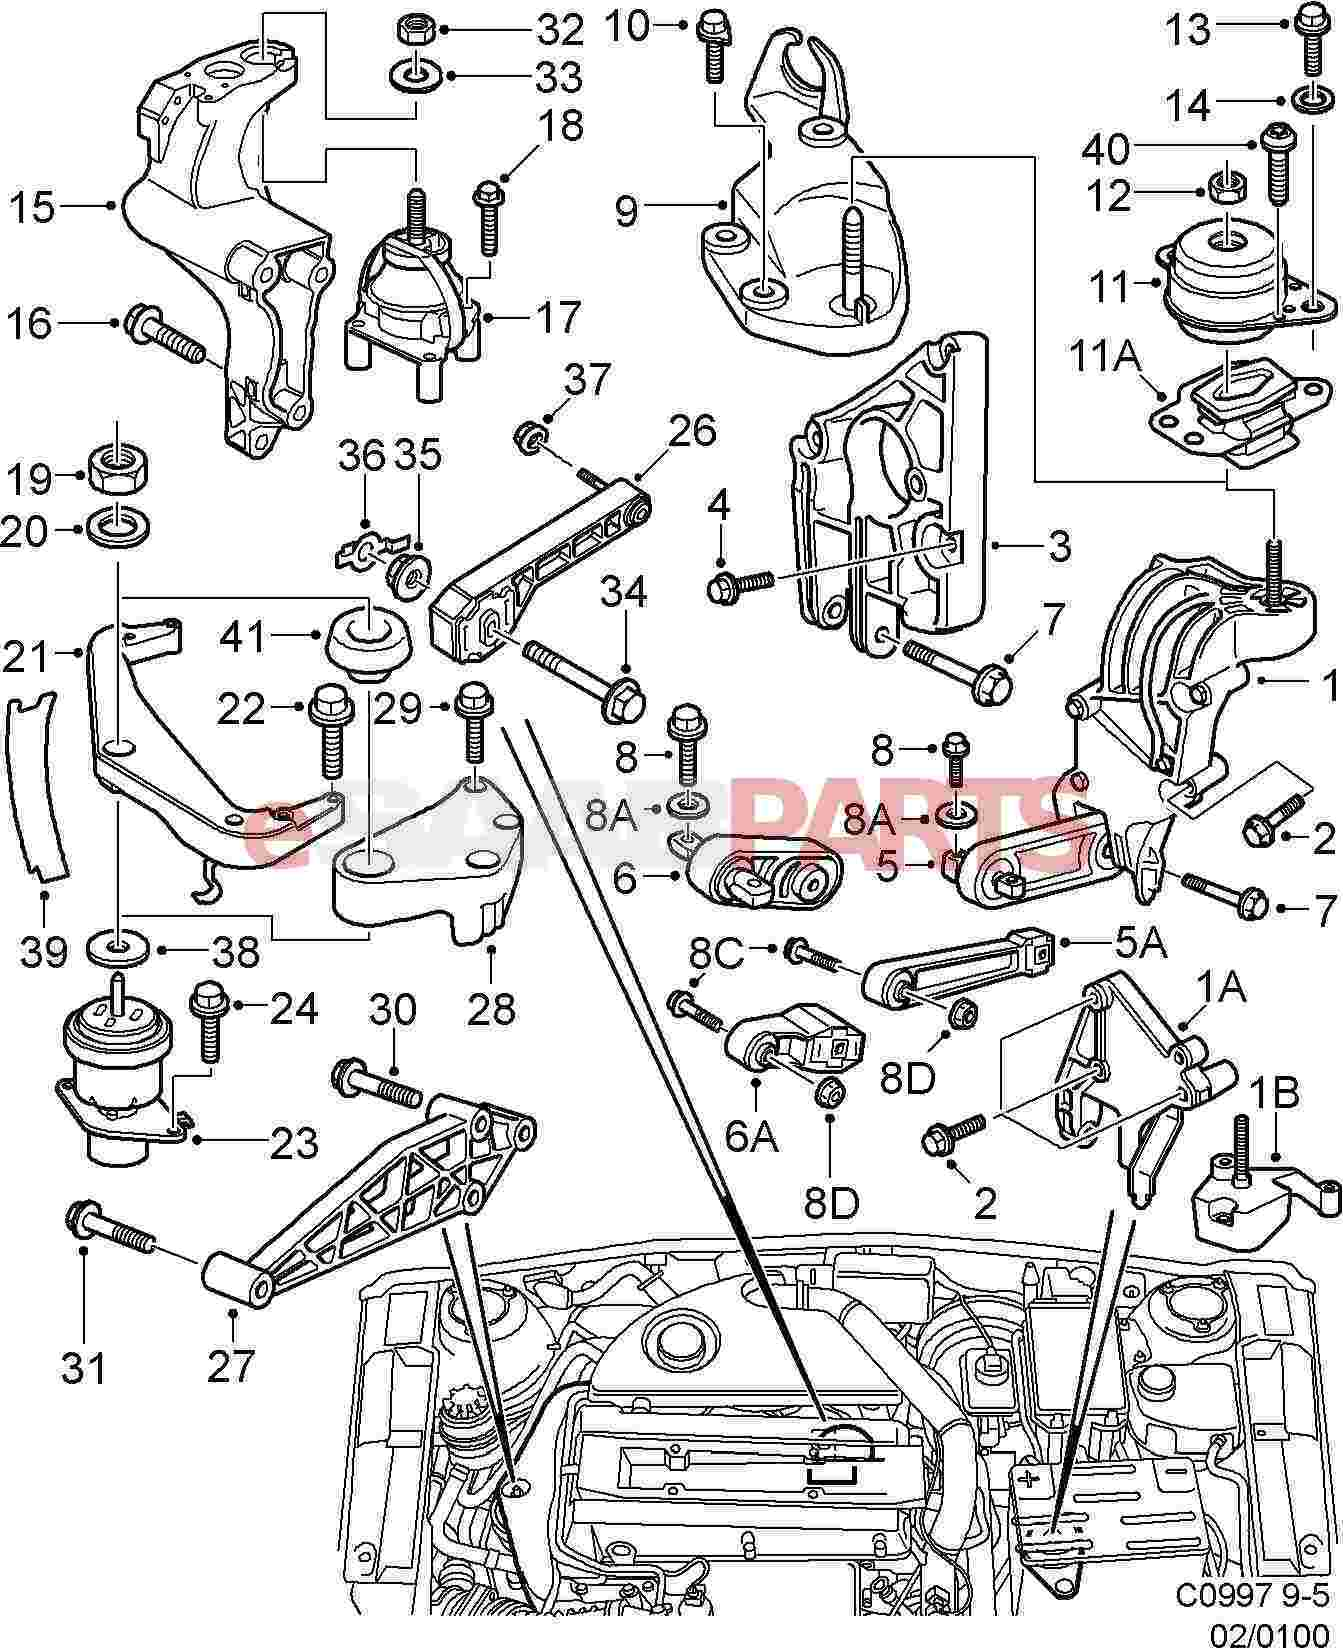 2003 Saab Engine Diagram Everything About Wiring 9 3 2006 Library Rh 52 Kaufmed De Belt